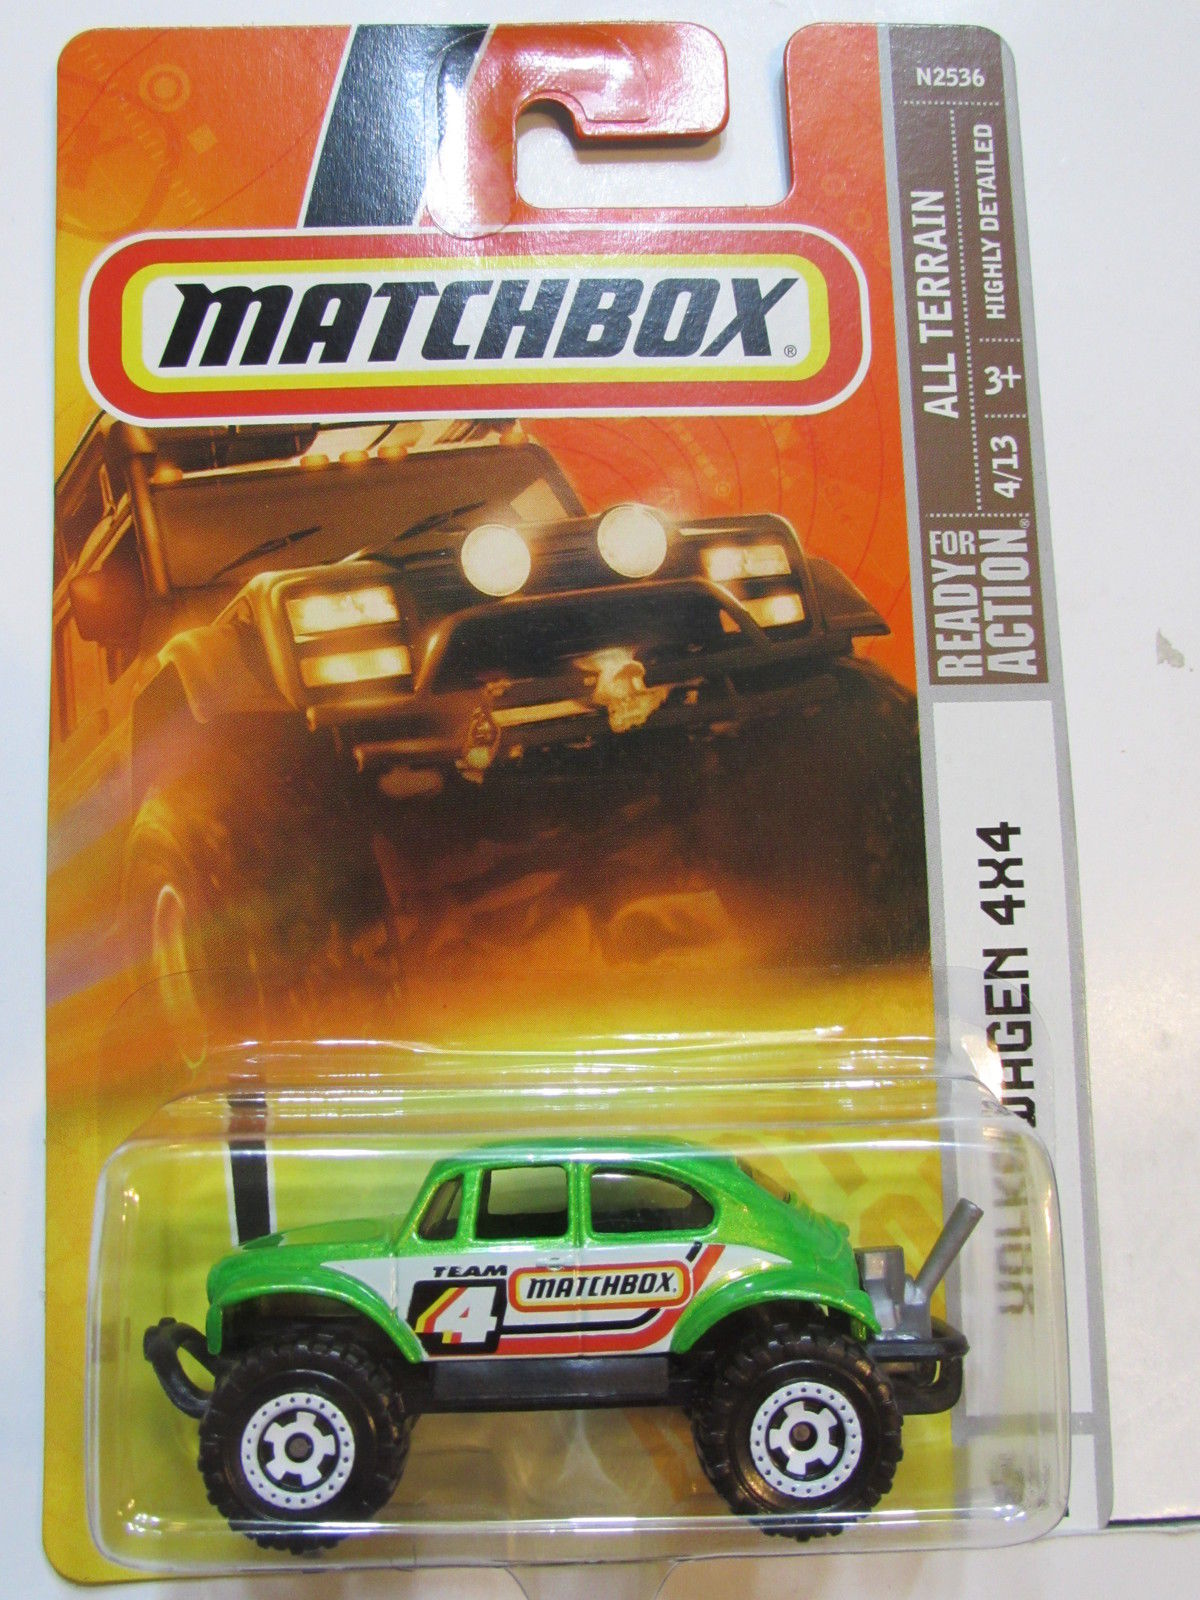 MATCHBOX 2008 READY FOR ACTION - AL TERRAIN - VOLKSWAGEN BEETLE 4X4 #91 GREEN